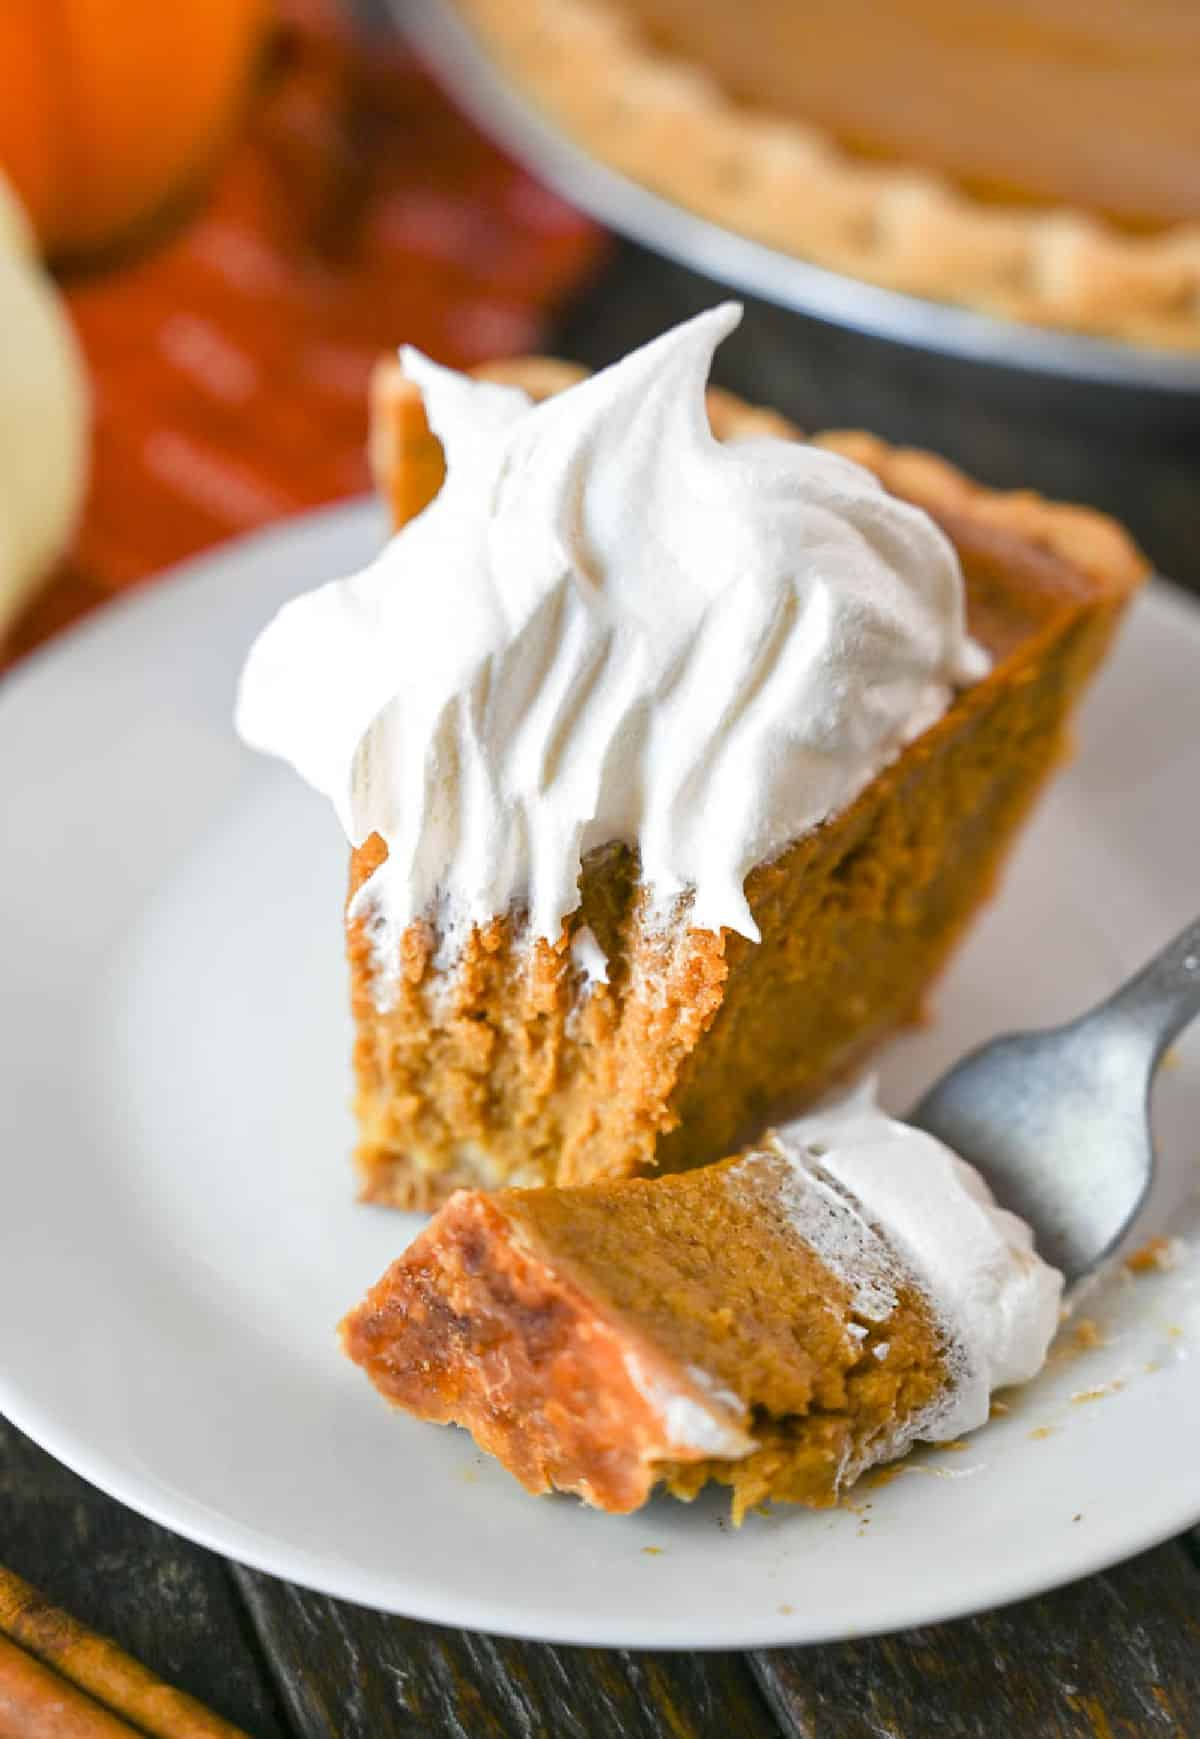 A bite of pumpkin pie on a fork laying next to a piece of pie.